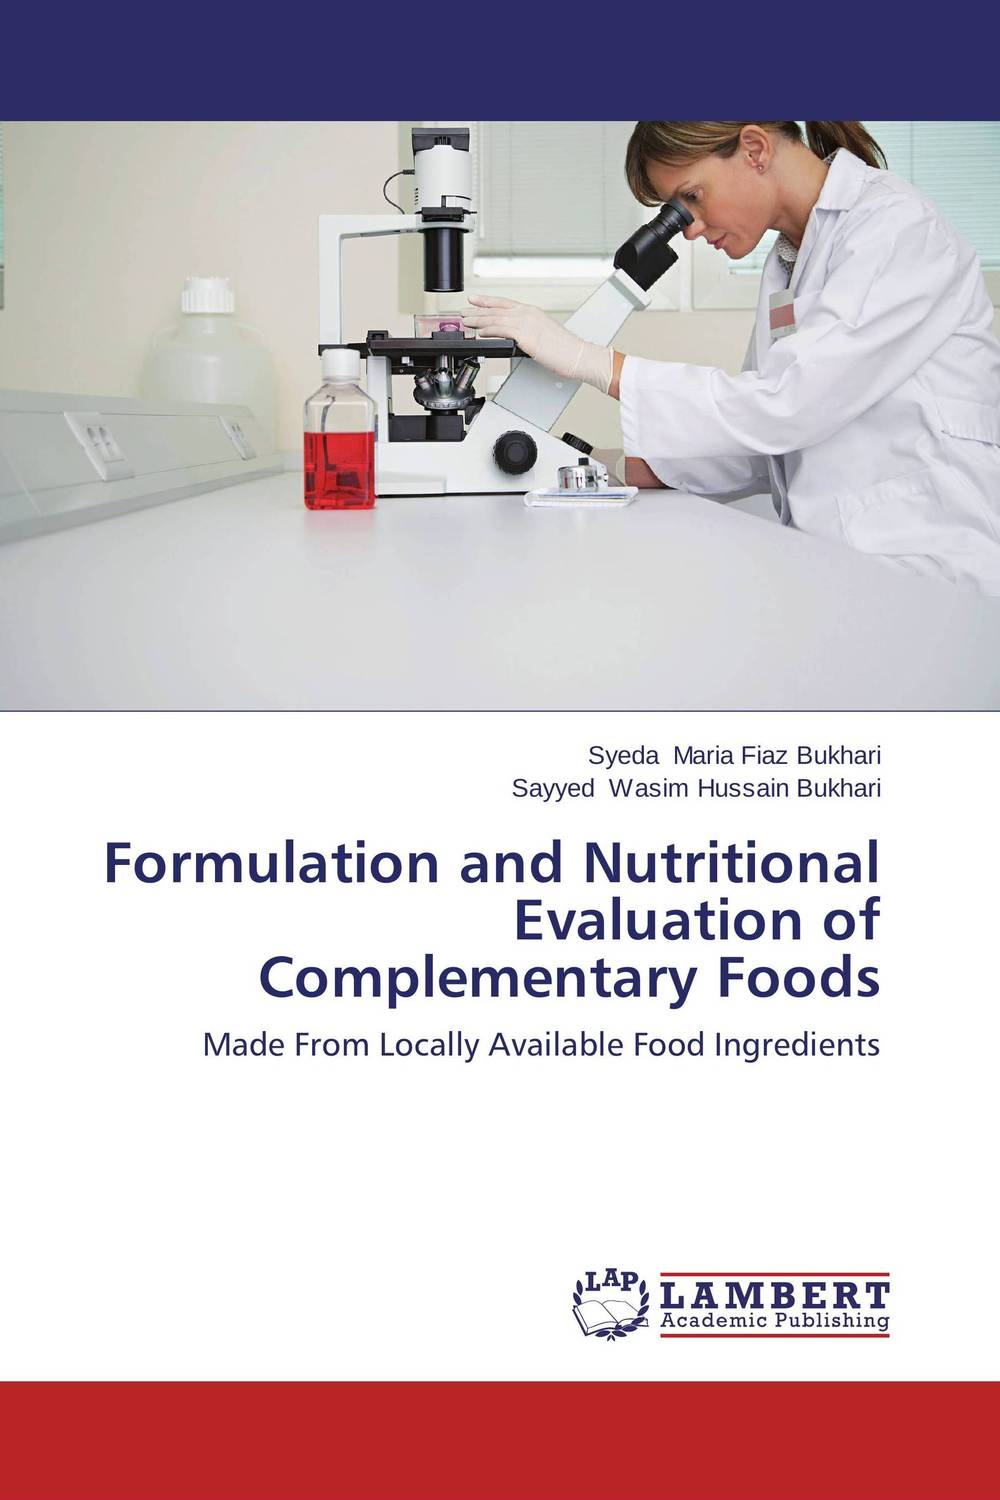 Formulation and Nutritional Evaluation of Complementary Foods brijesh yadav and rakesh kumar soil zinc fractions and nutritional composition of seeded rice